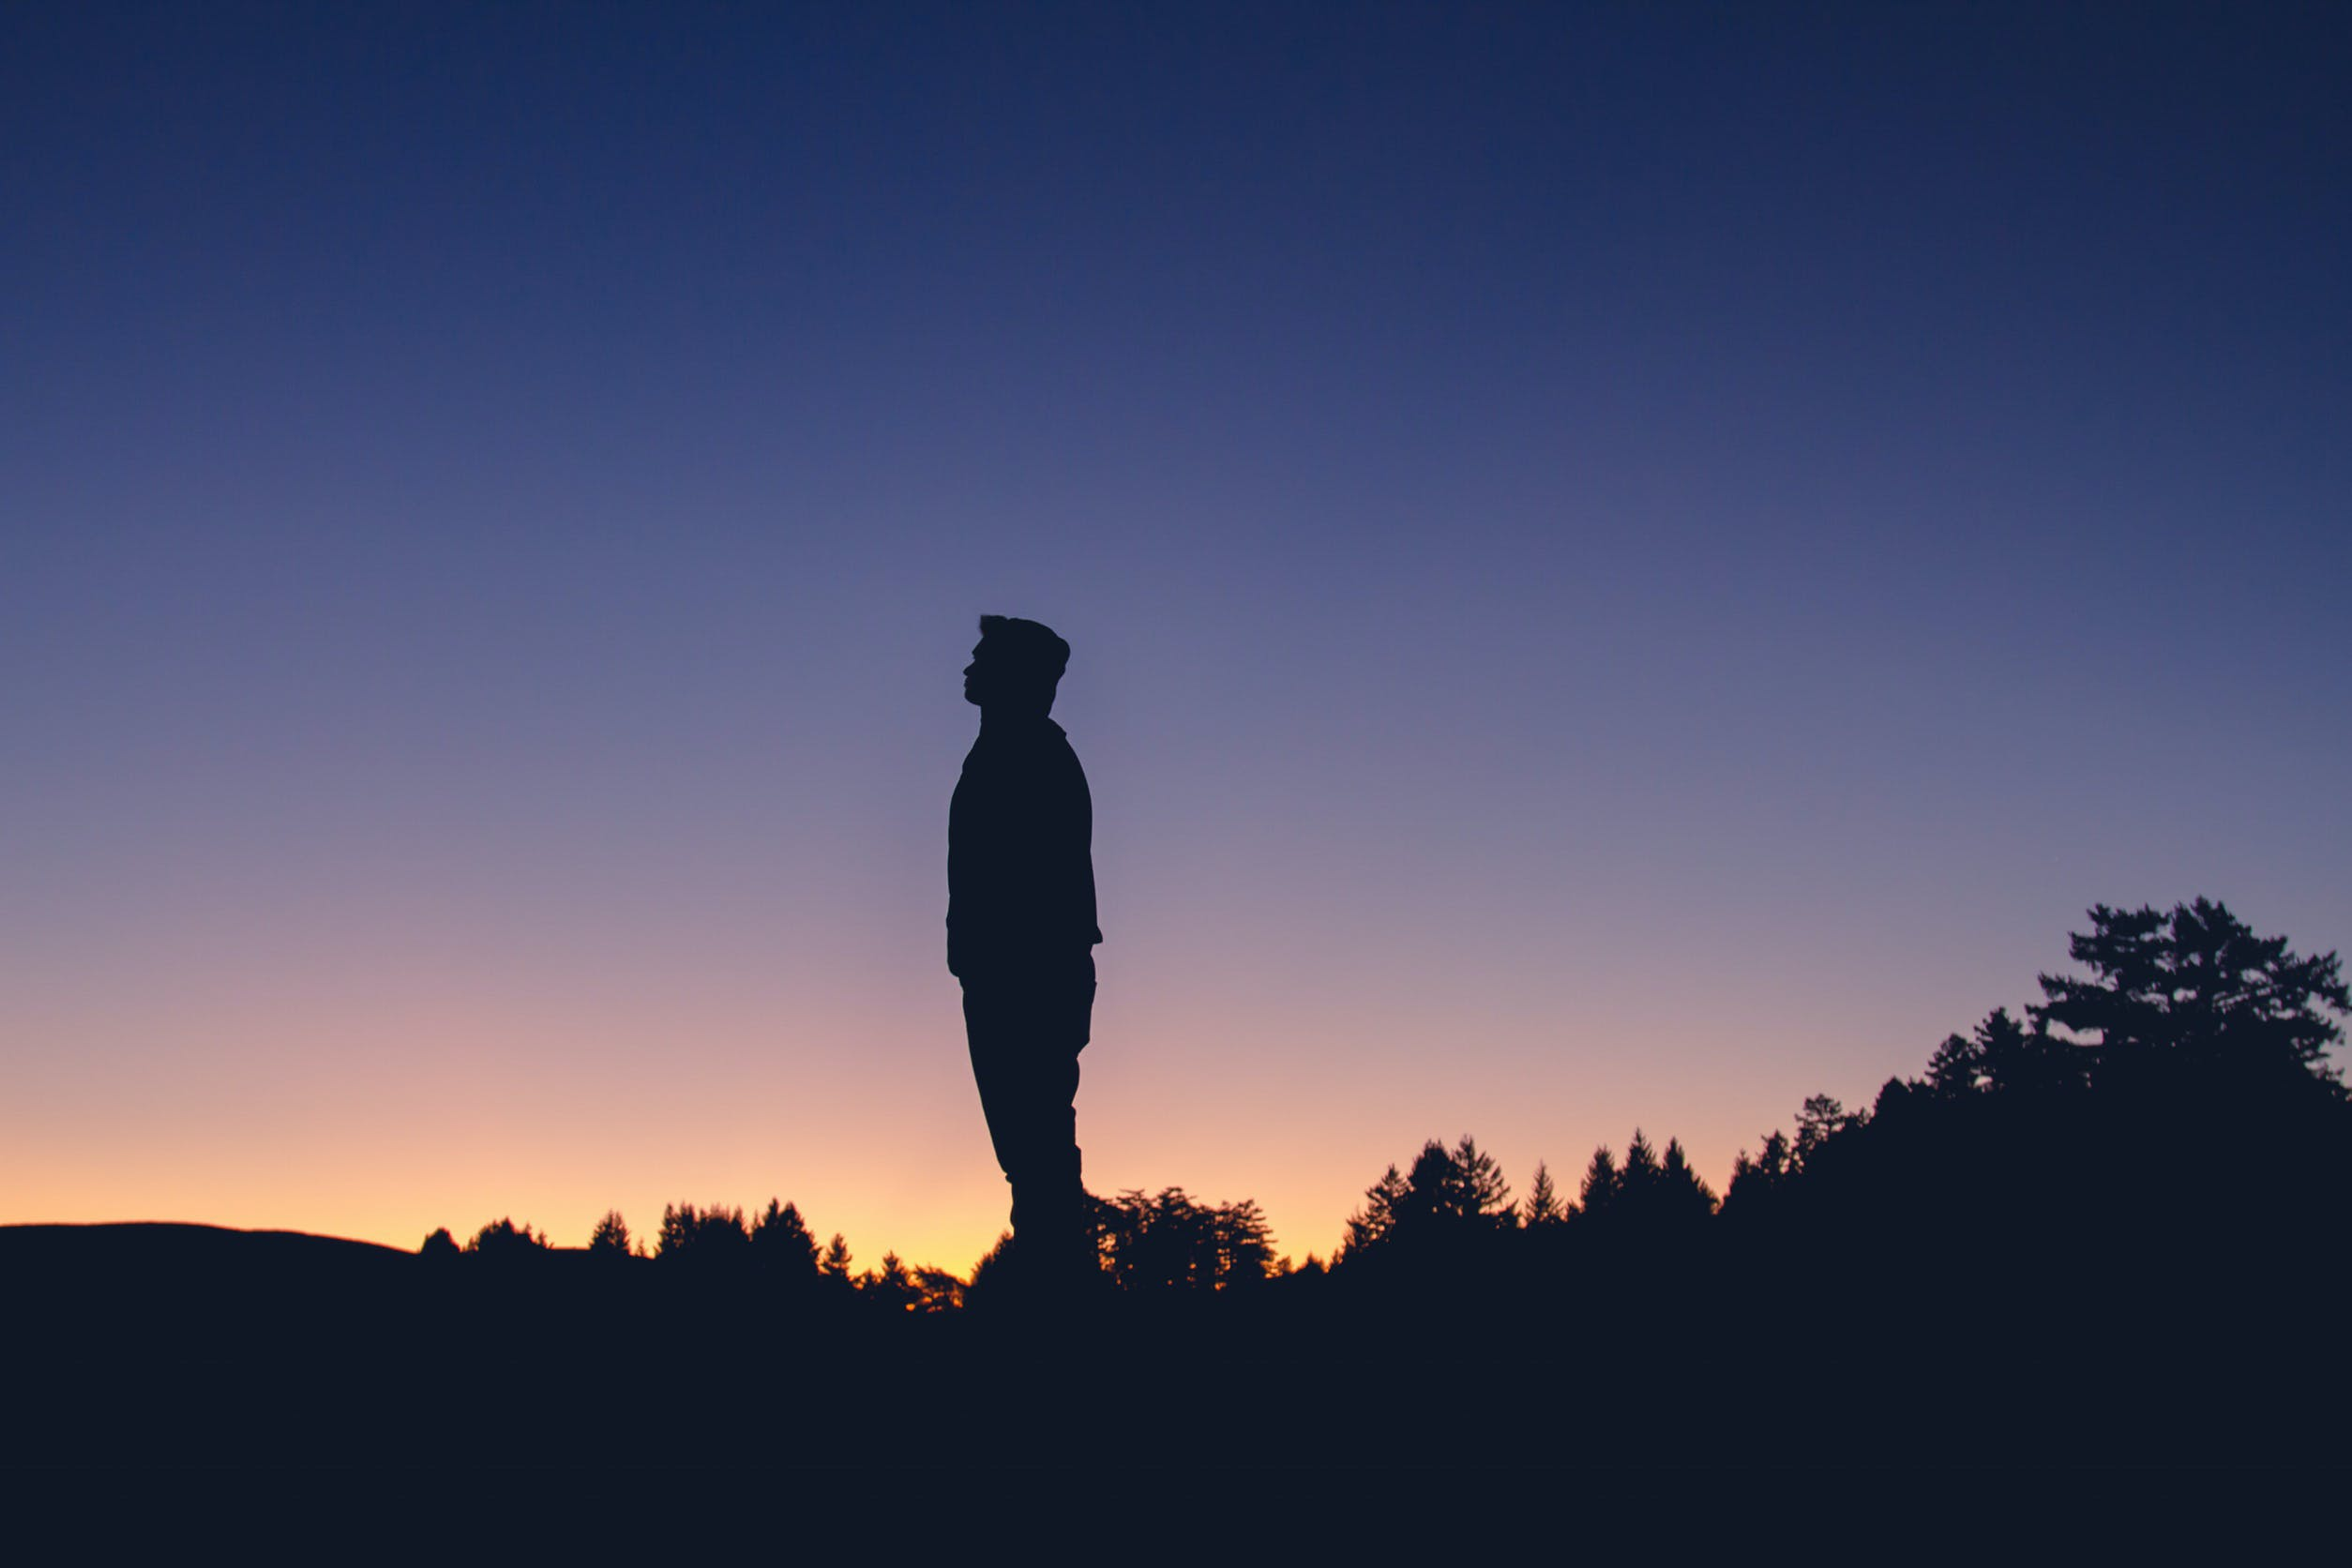 Free stock photo of nature, sunset, man, person